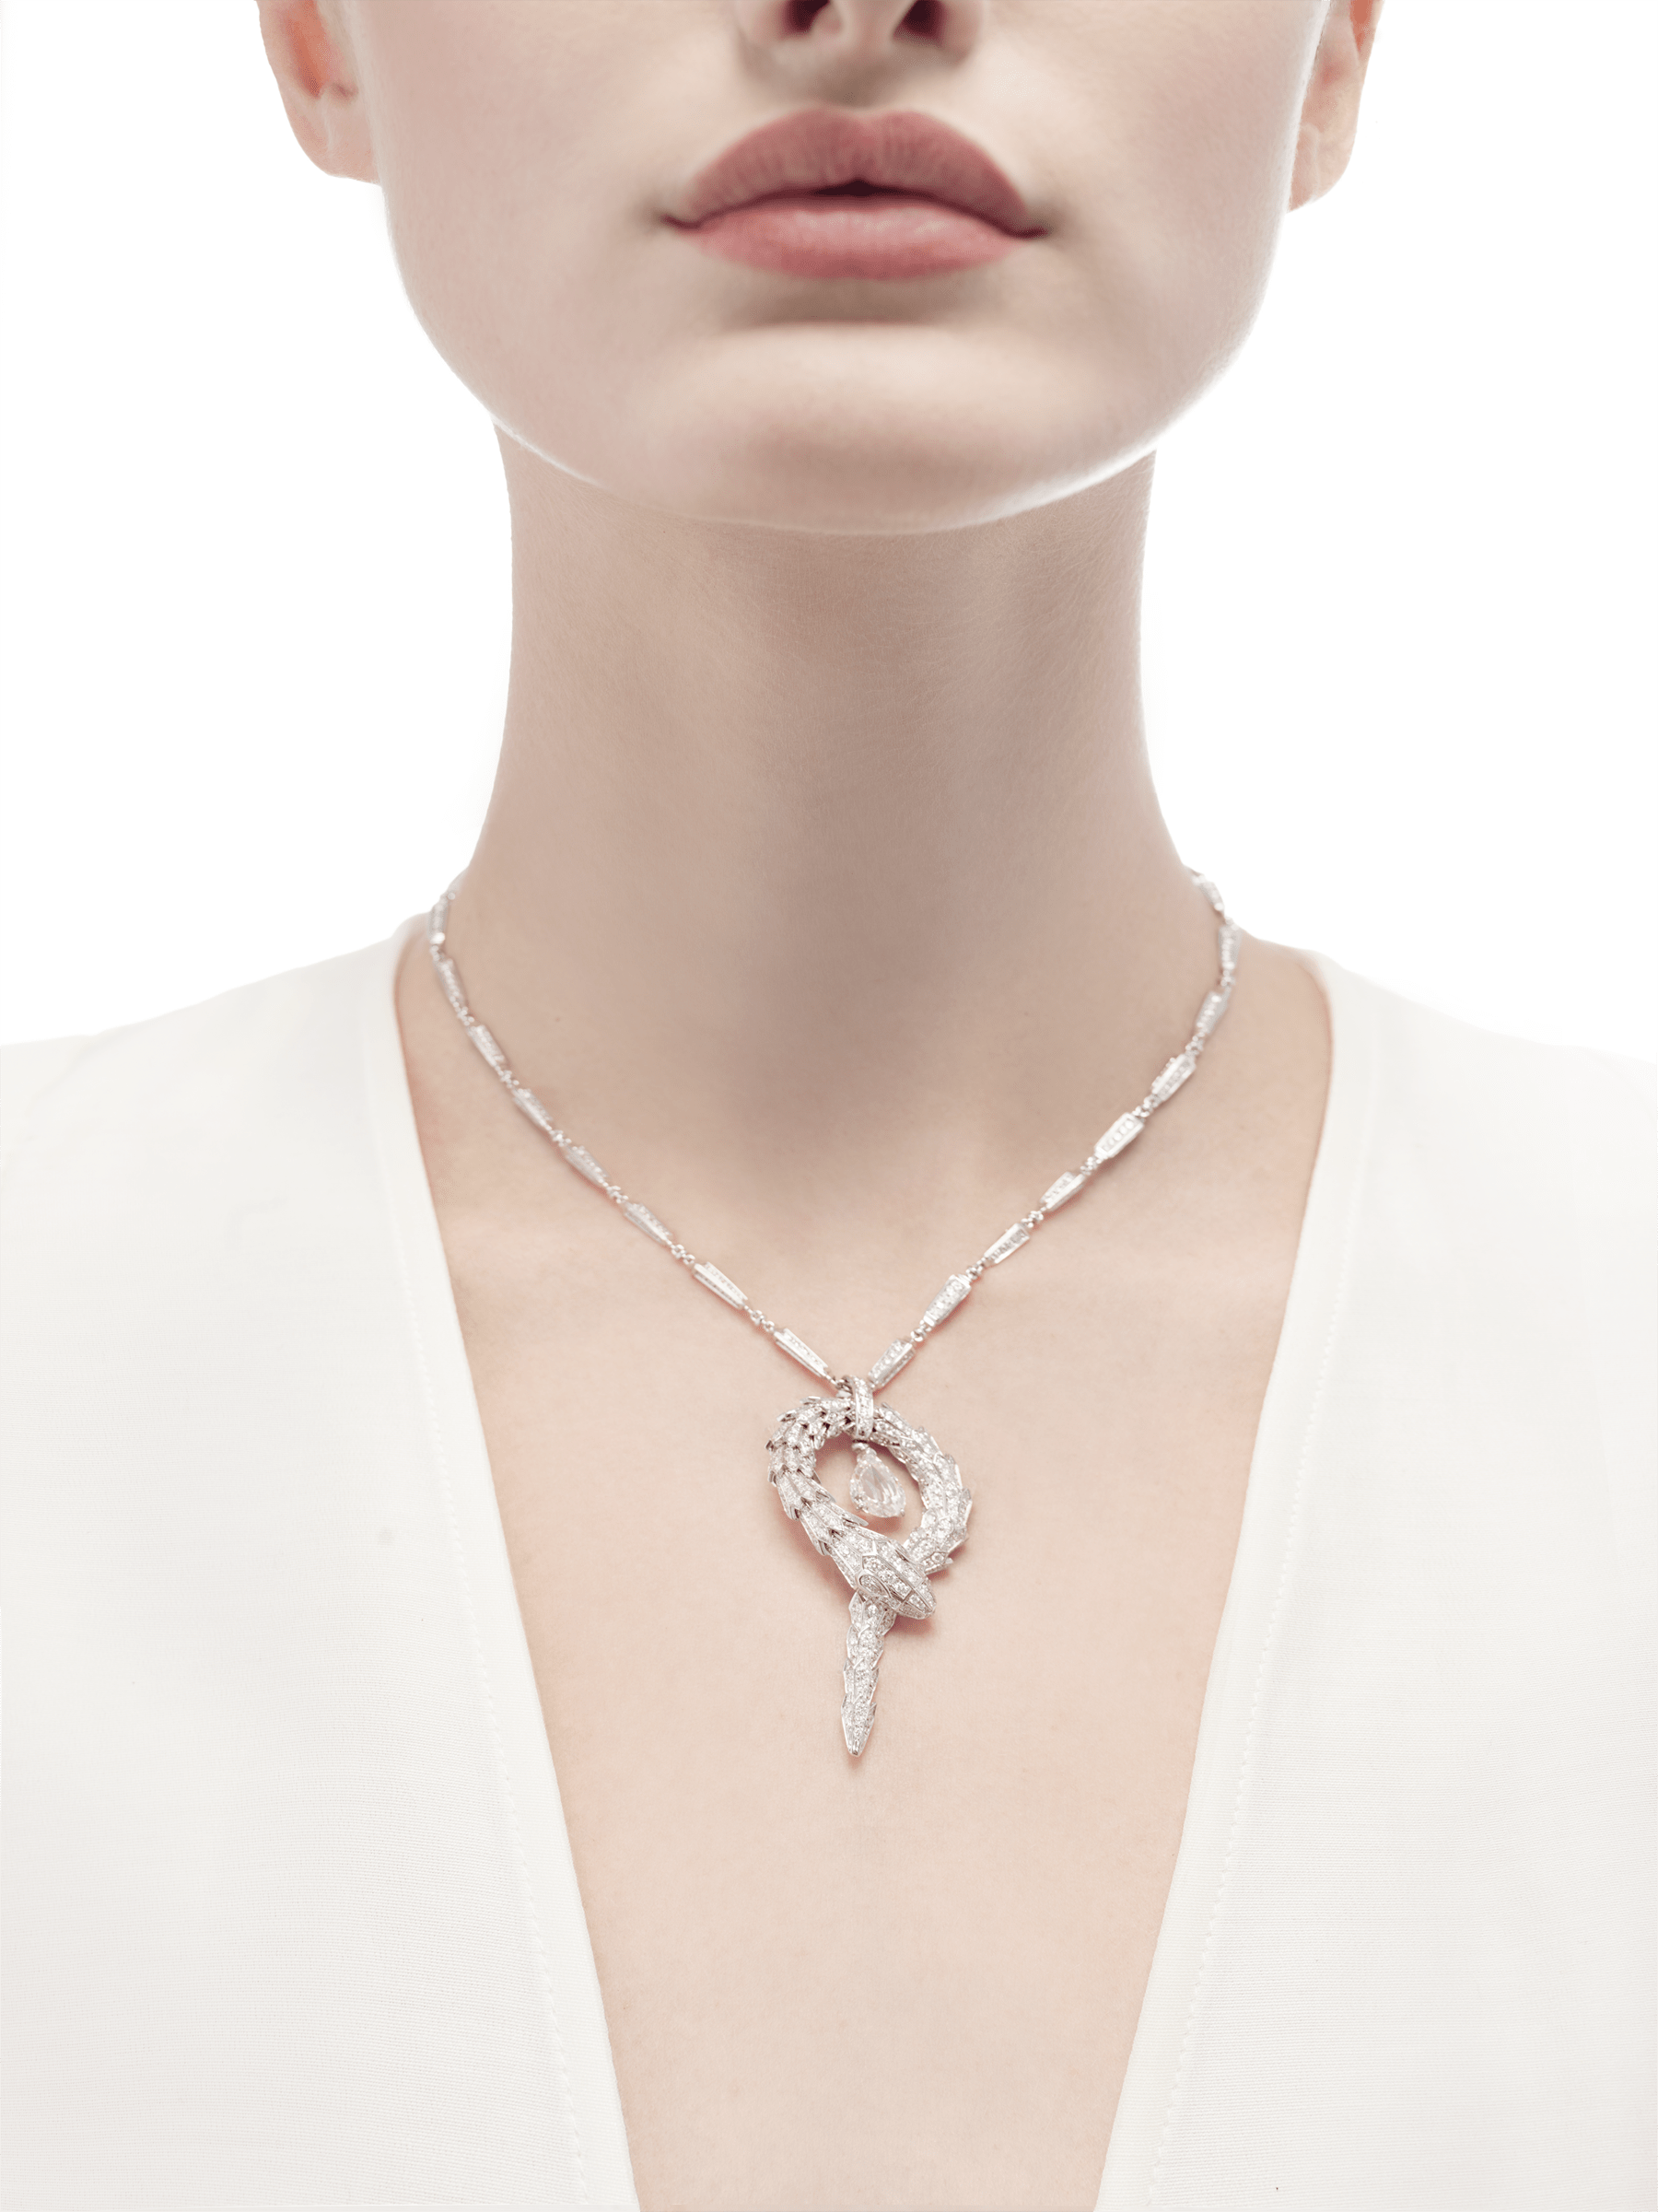 Serpenti small pendant in 18 kt white gold with central diamond and pavé diamonds. 354088 image 2